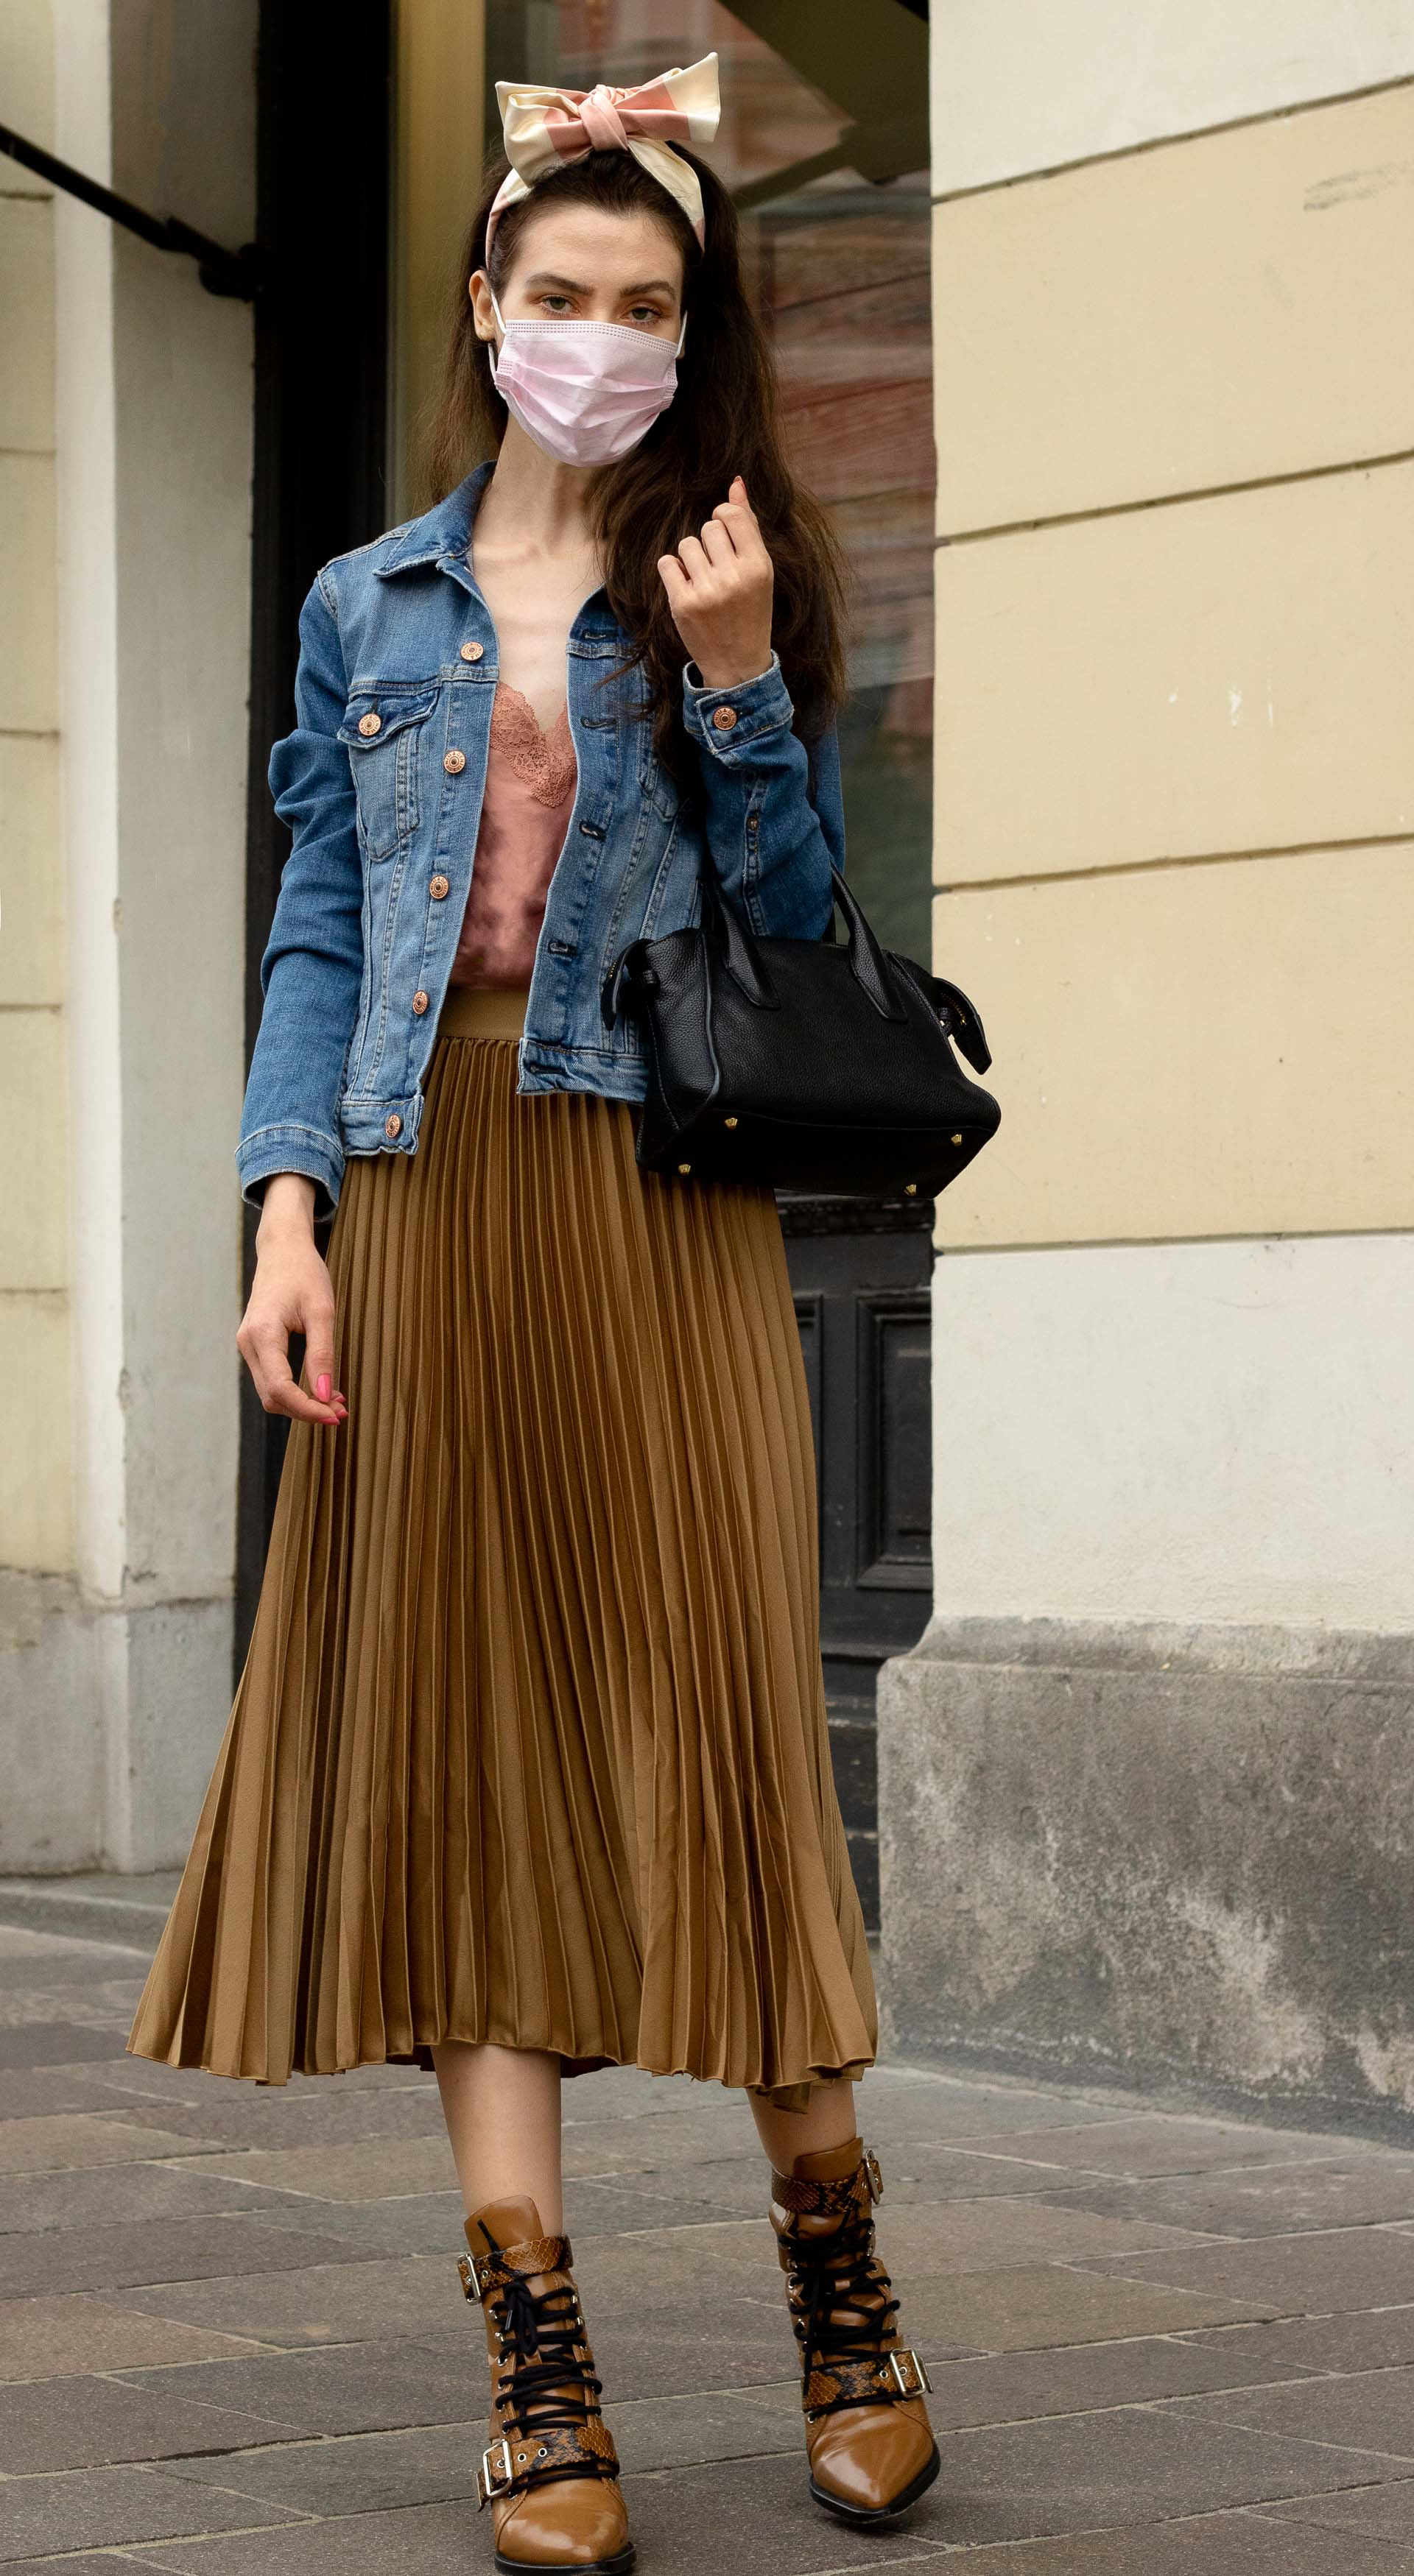 Fashion blogger Veronika Lipar of Brunette from Wall Street dressed in casual summer to fall outfit H&M denim jacket Etam slip top H&M gold pleated midi skirt Chloé Rylee boots bow headband pink face mask on the street in September